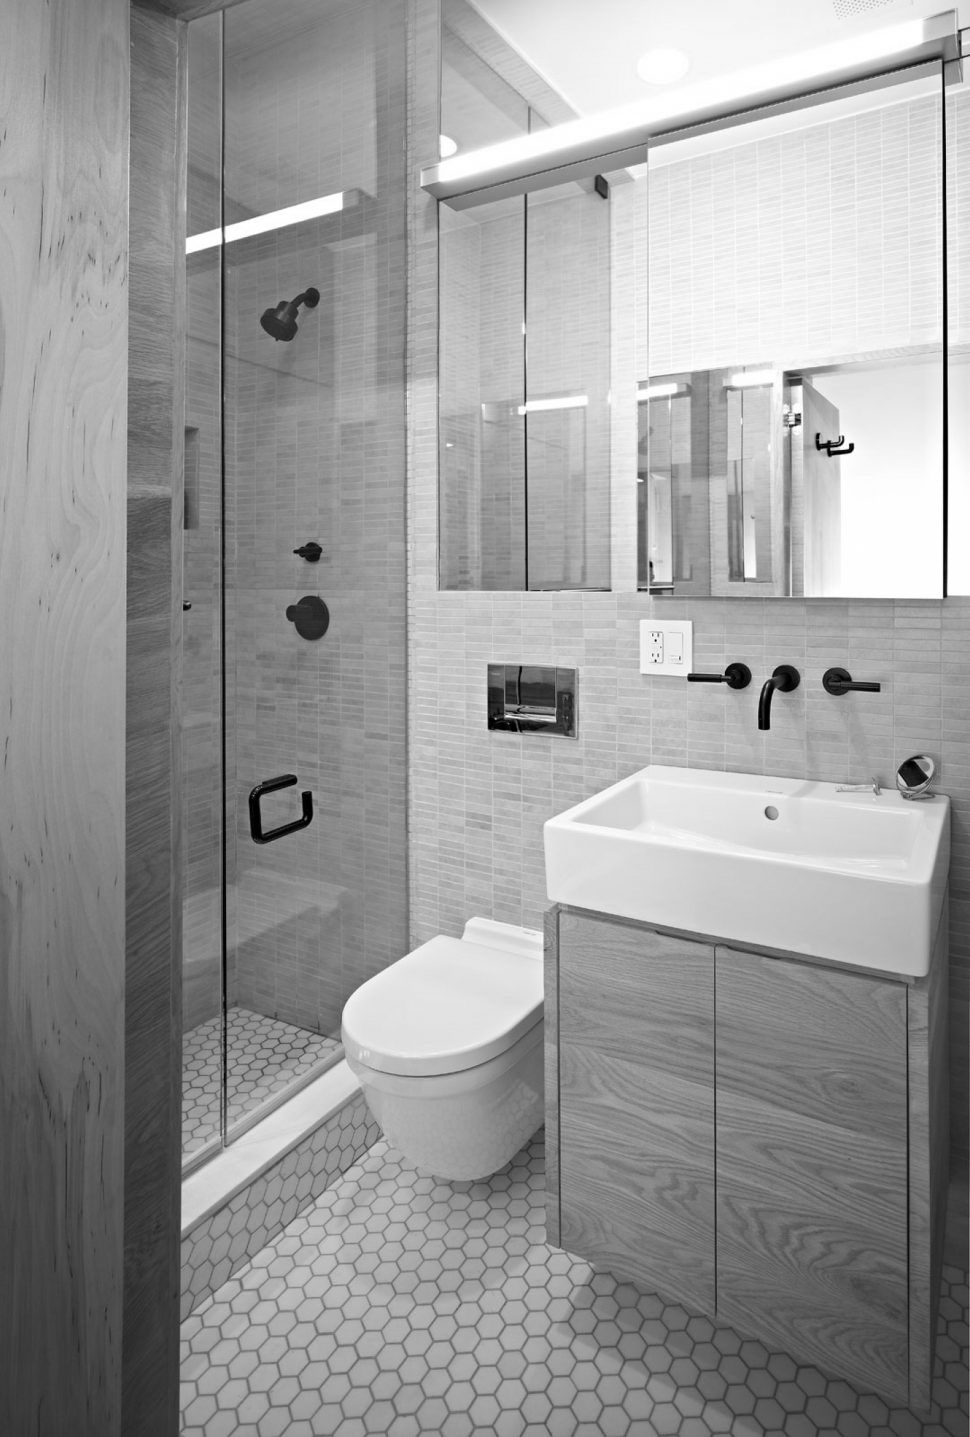 30 Most Popular And Amazing Bathroom Design Ideas For 2019 Modern Bathroom Designs For Small Spaces Bathroom Remodel Shower Small Bathroom Bathrooms Remodel